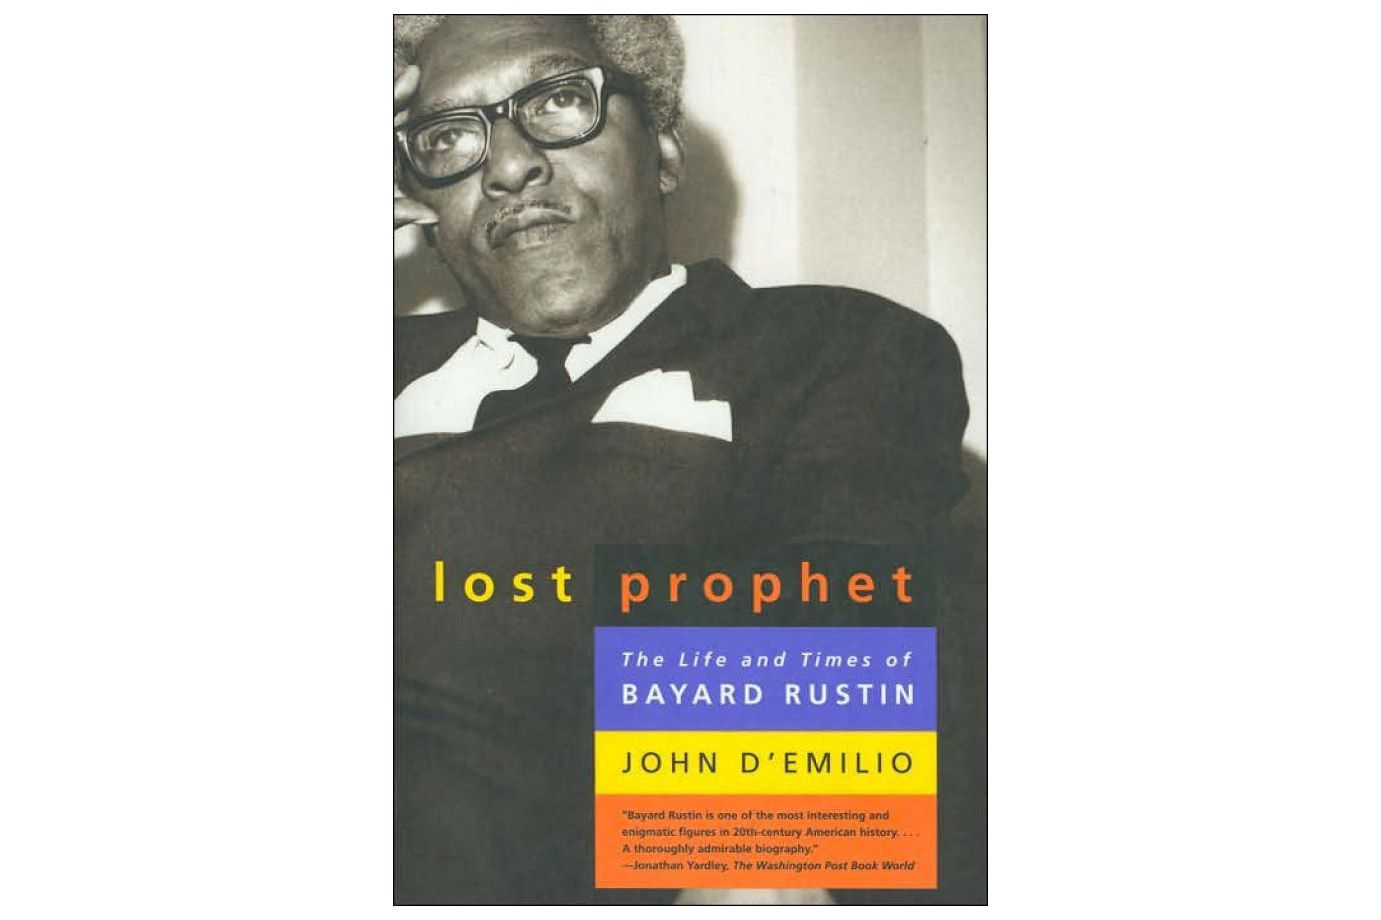 The Lost Prophet: The Life and Times of Bayard Rustin by John D'Emilio